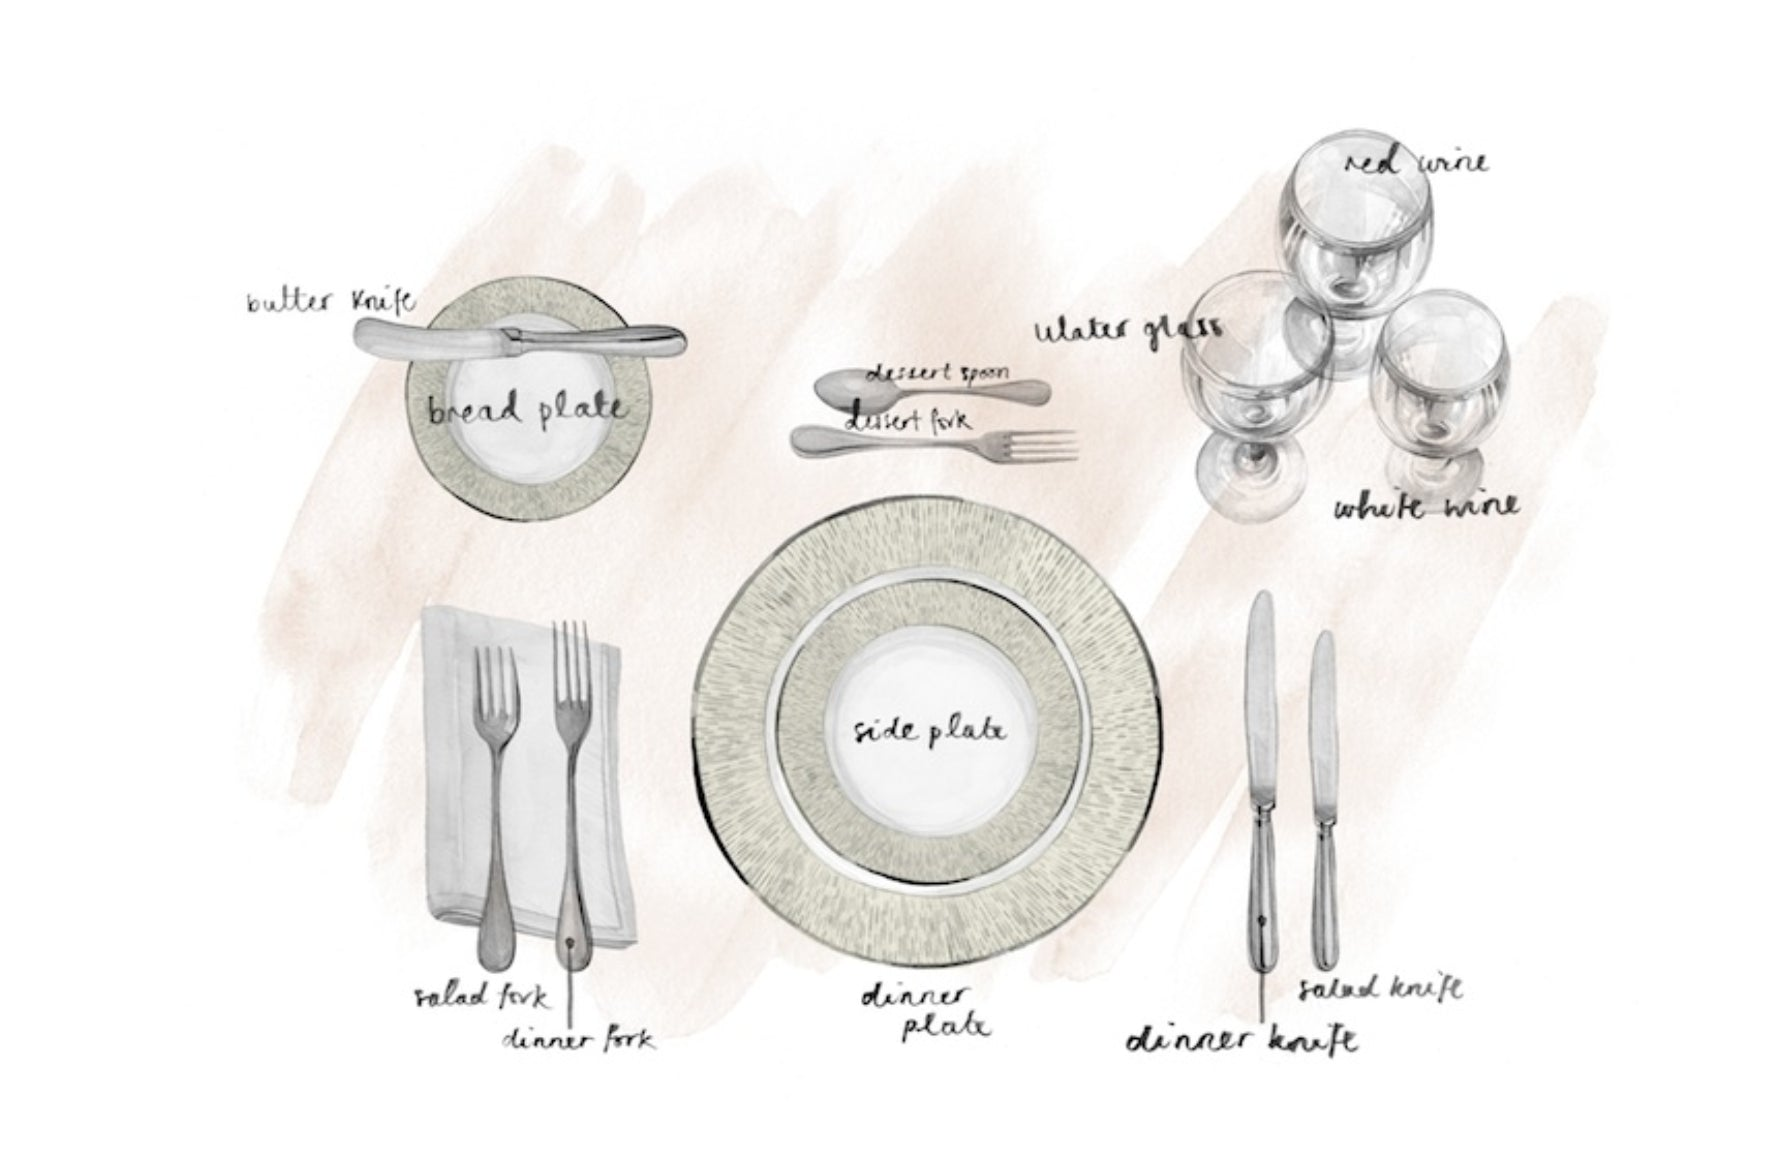 How to set a table for dinner - dining table setting ideas - LuxDeco.com